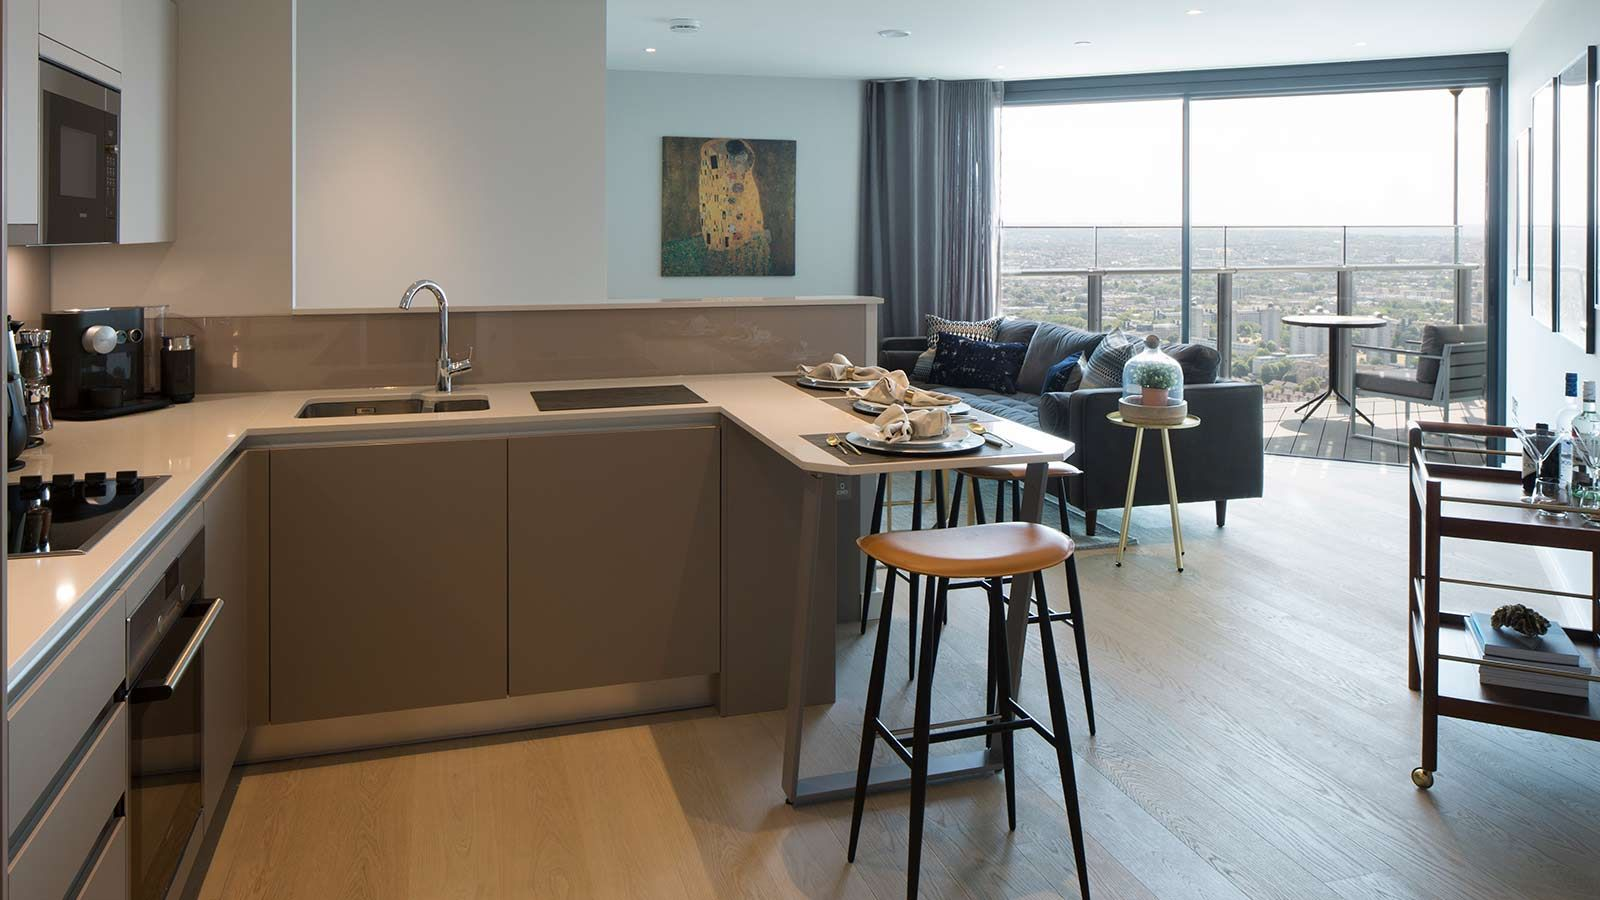 Kitchen and living room within furnished apartment - Mace Group